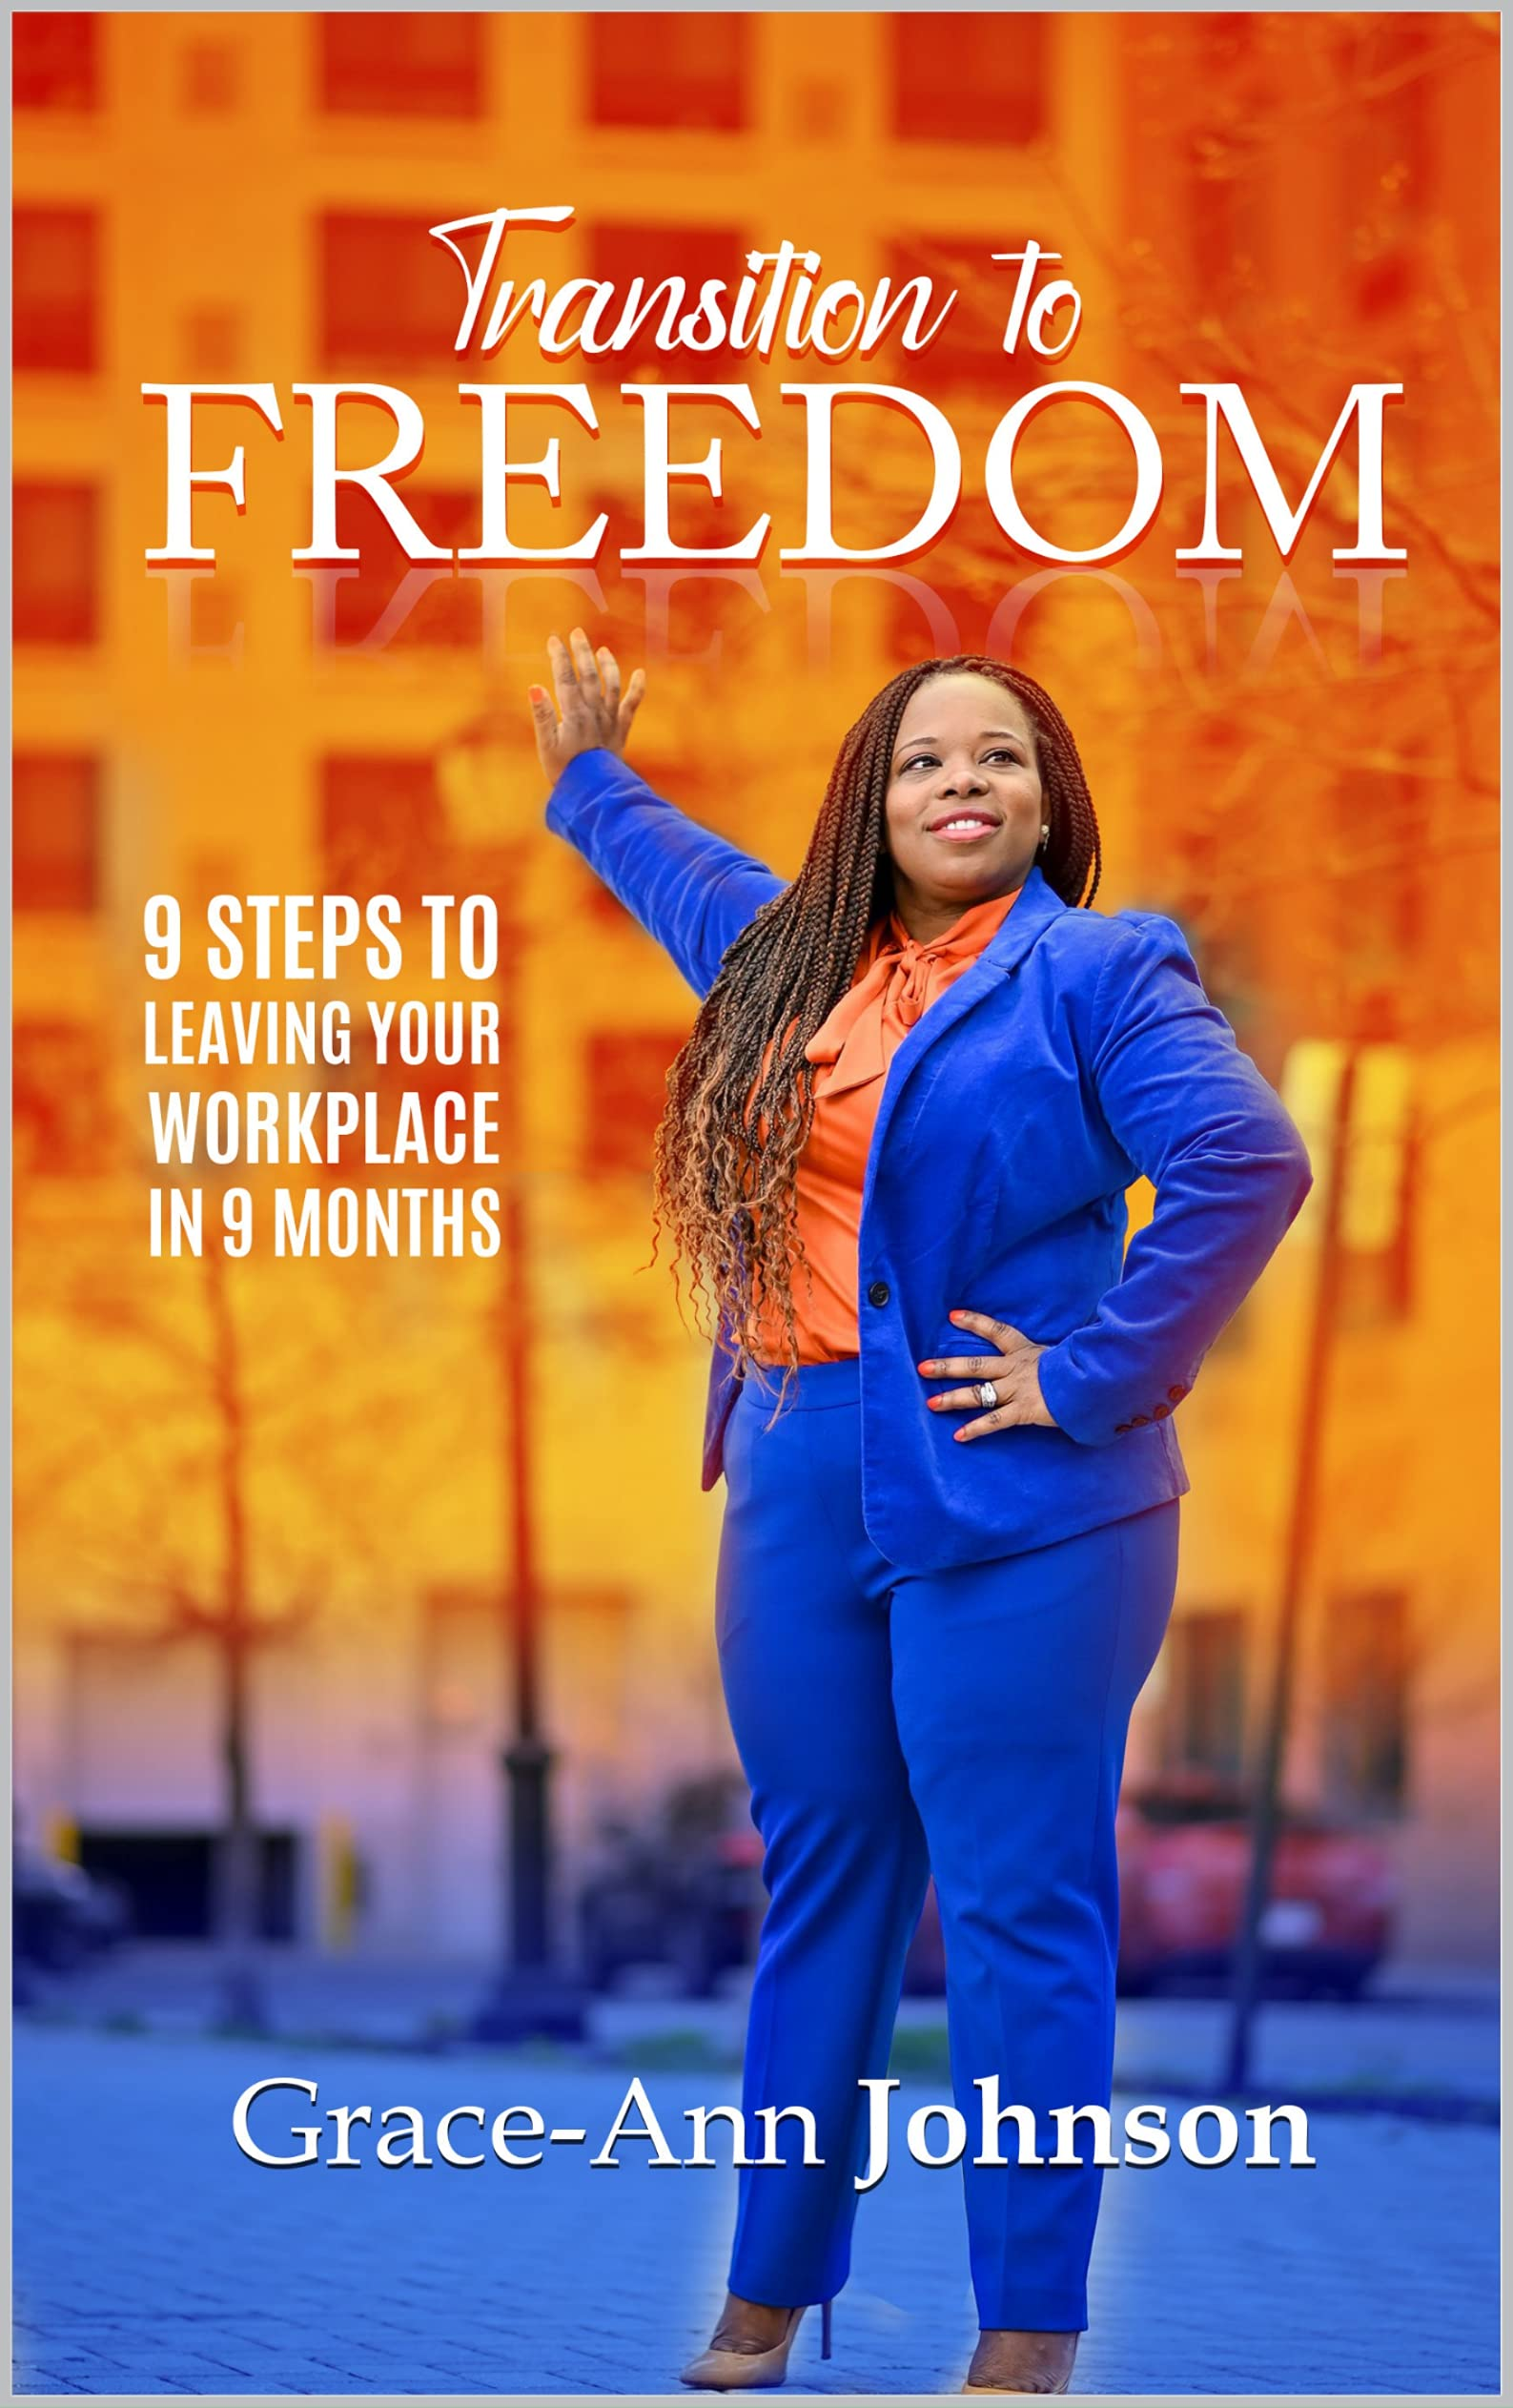 Transition to FREEDOM: 9 Steps to Leaving the Workplace In 9 Months